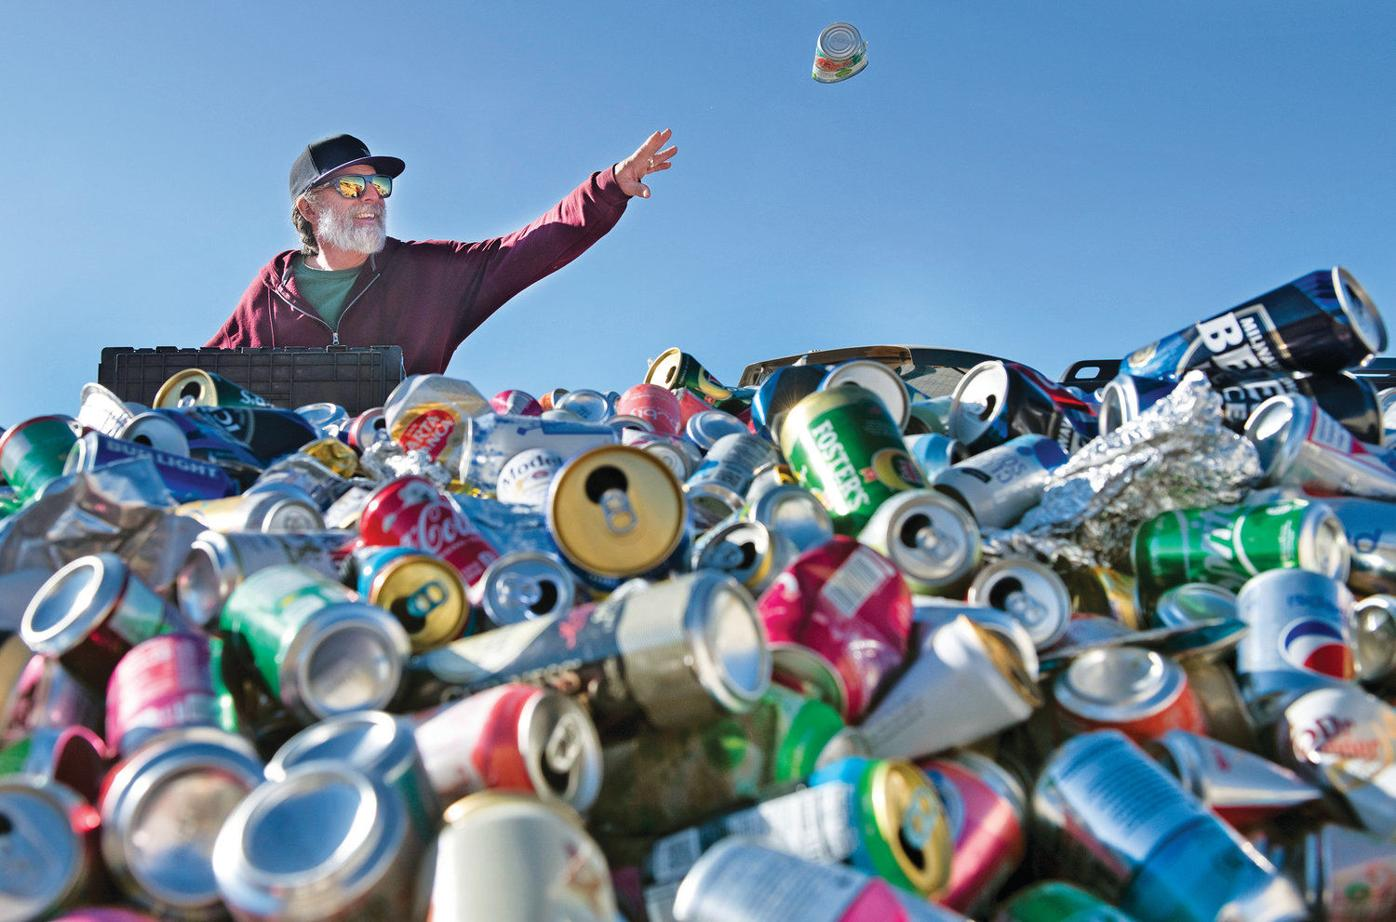 Will Taos resume glass and plastic recycling?